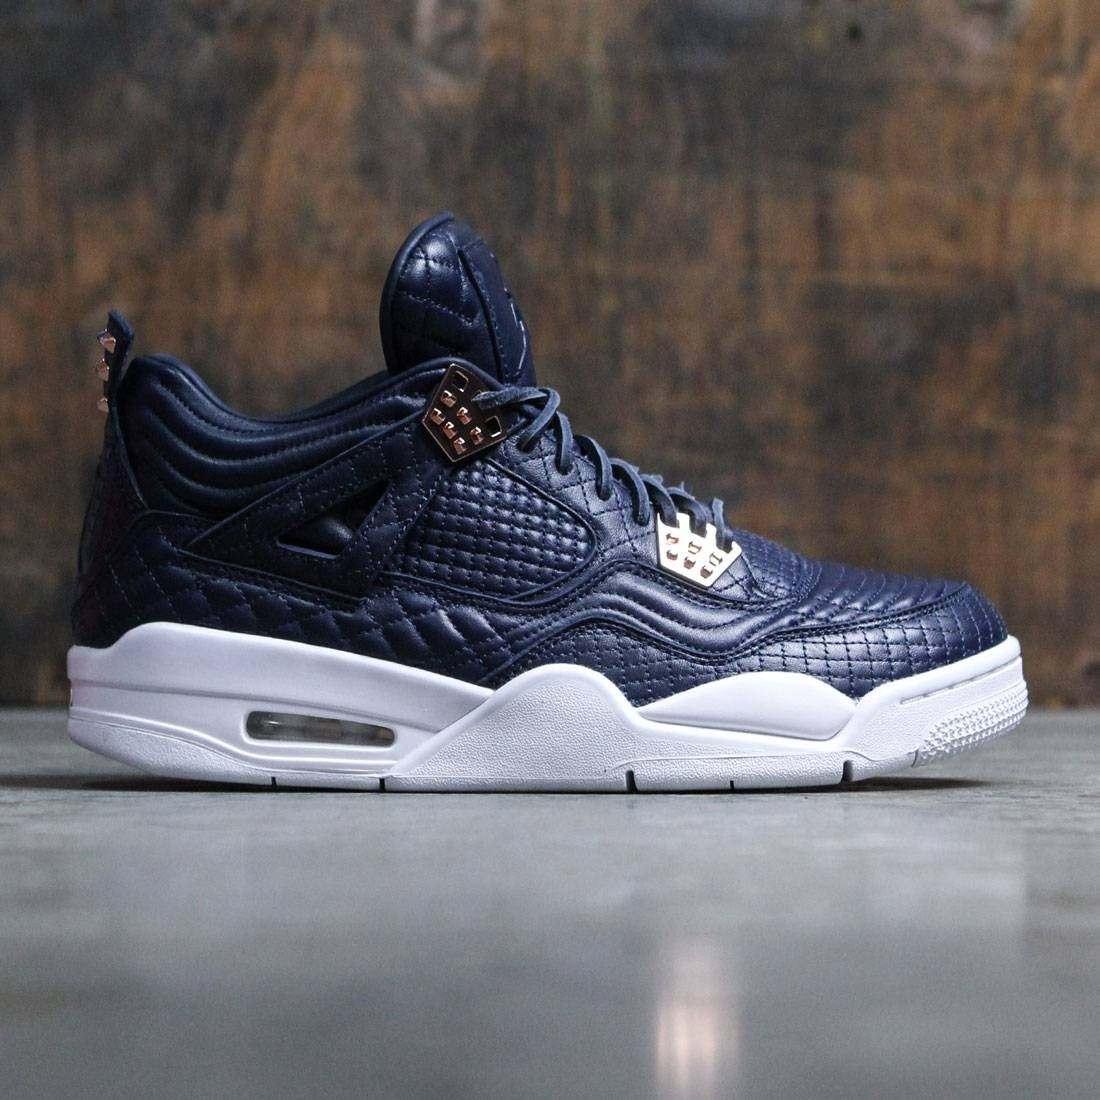 abfb2a0132e071 Jordan Men AIR JORDAN 4 RETRO Pinnacle PREMIUM (navy   obsidian   obsidian -white)